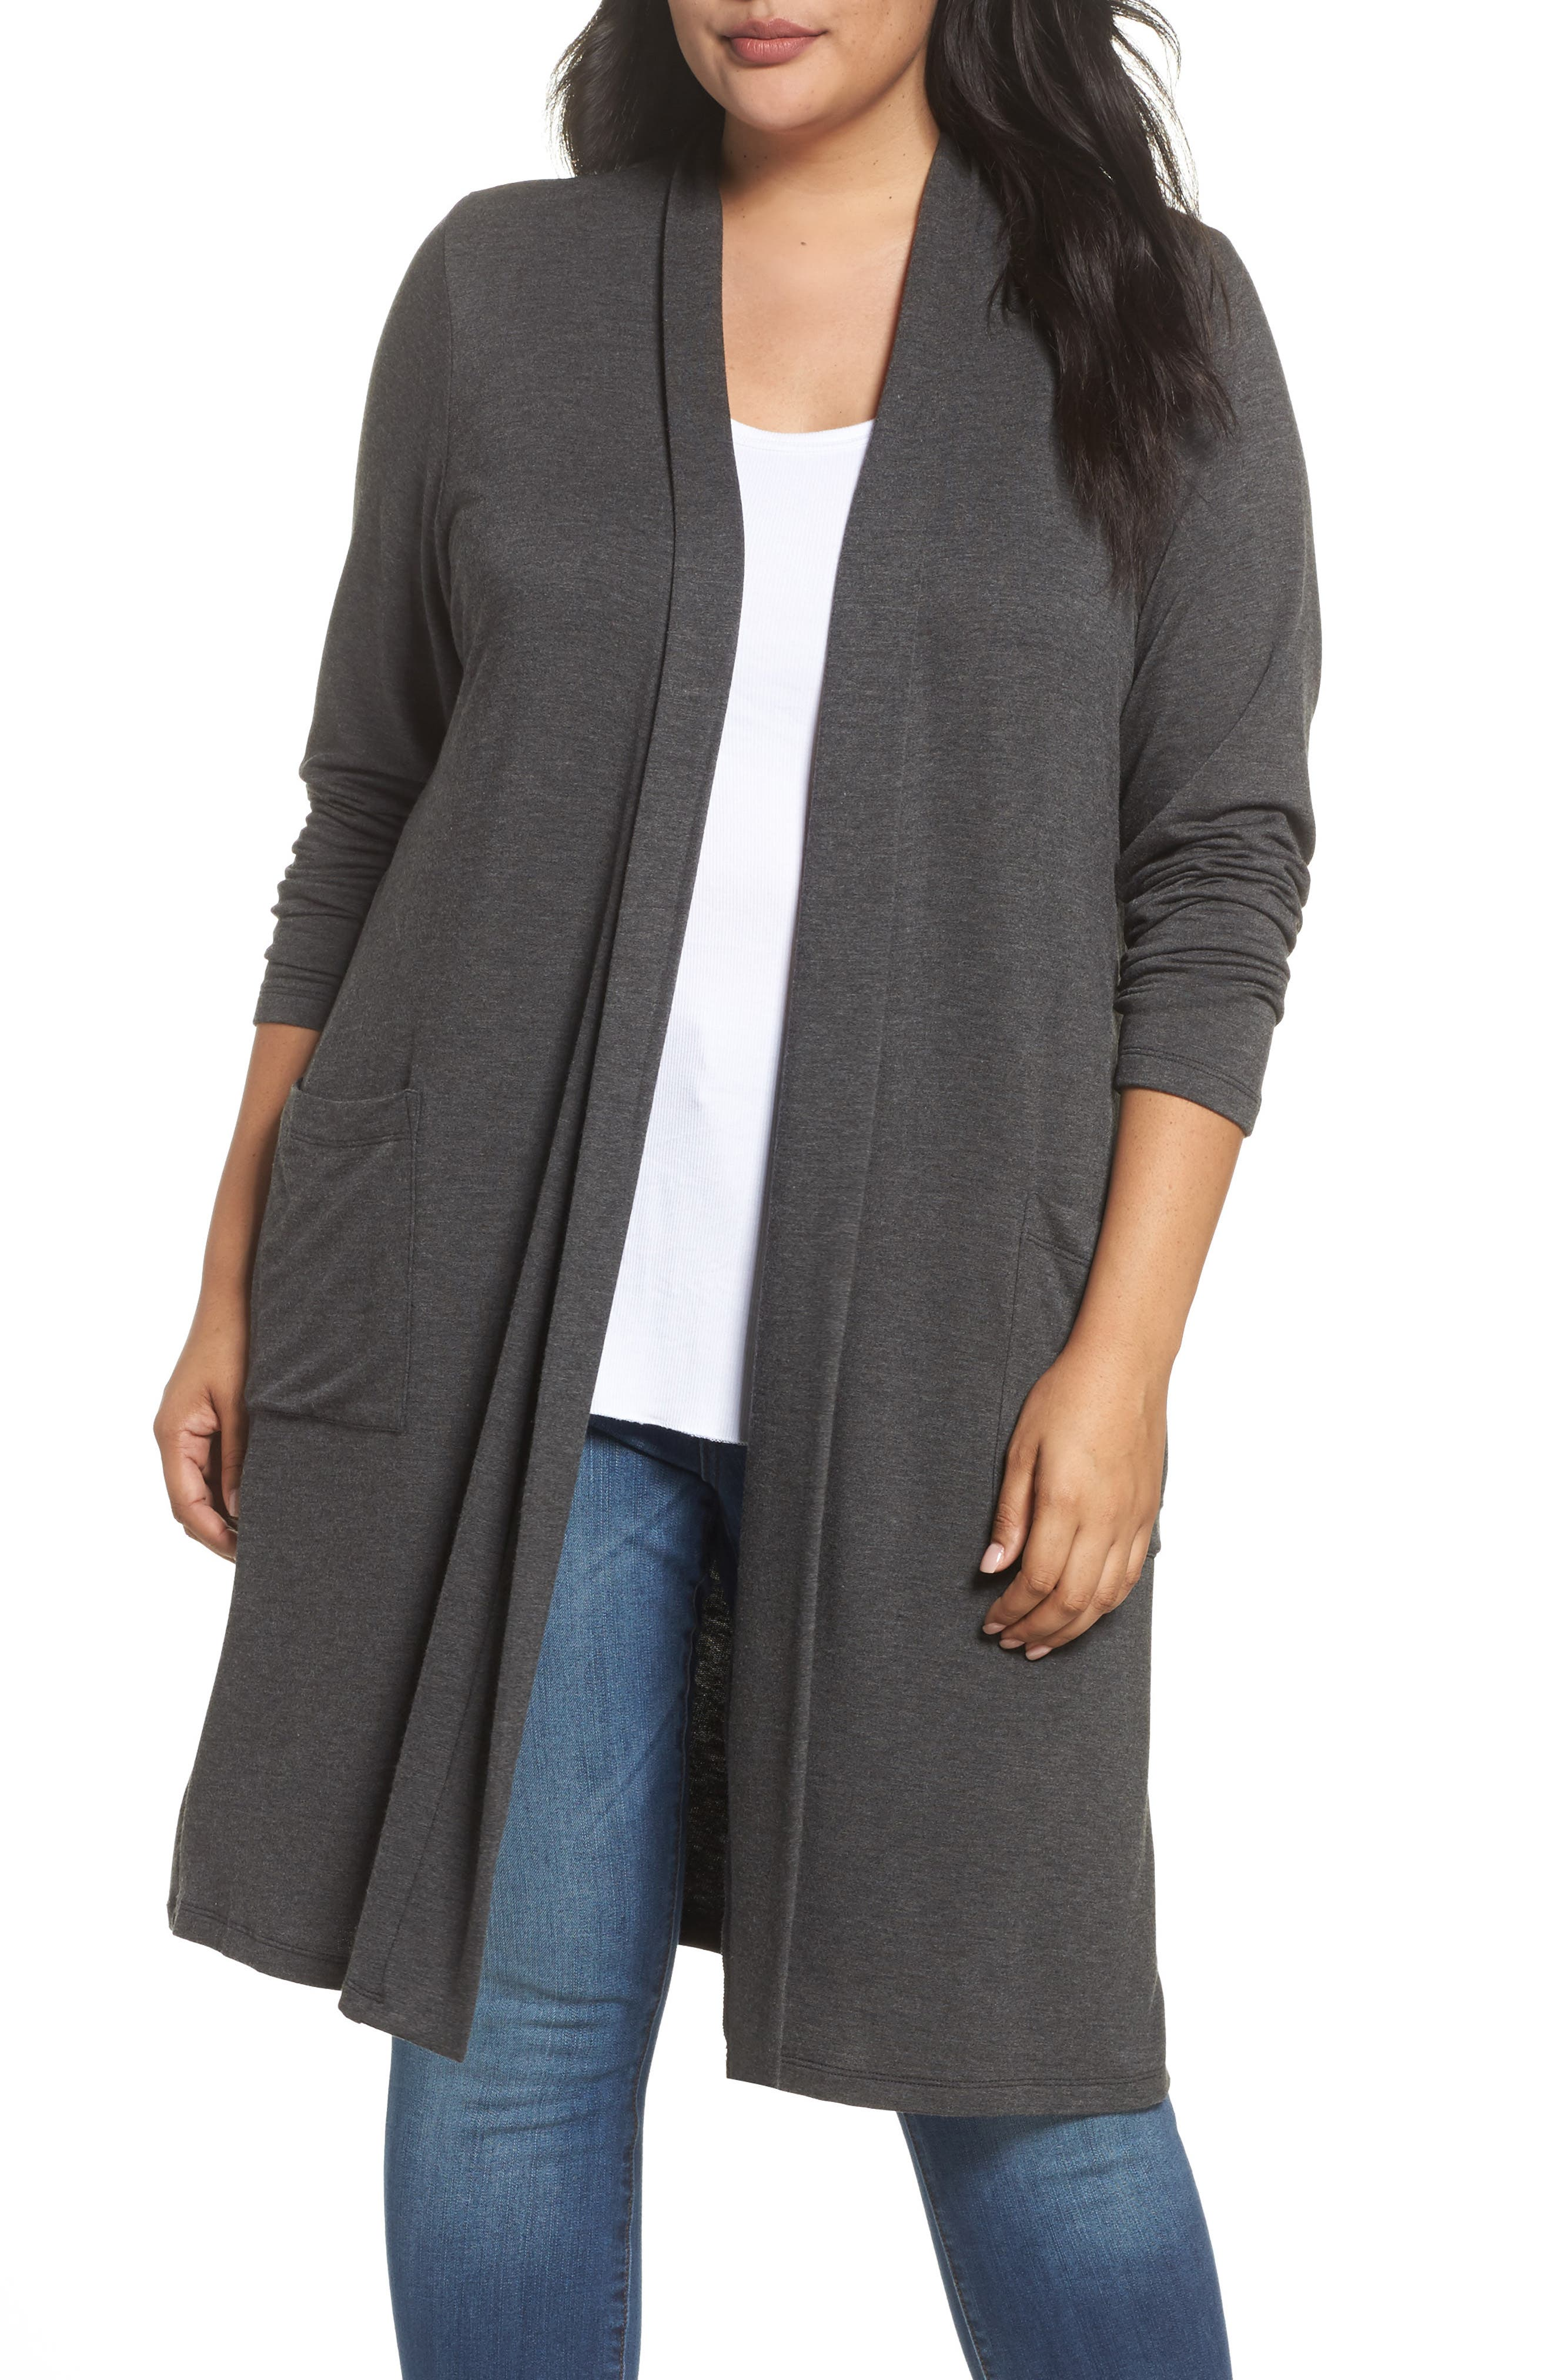 Two-Pocket Stretch Cardigan,                             Main thumbnail 1, color,                             Heather Charcoal